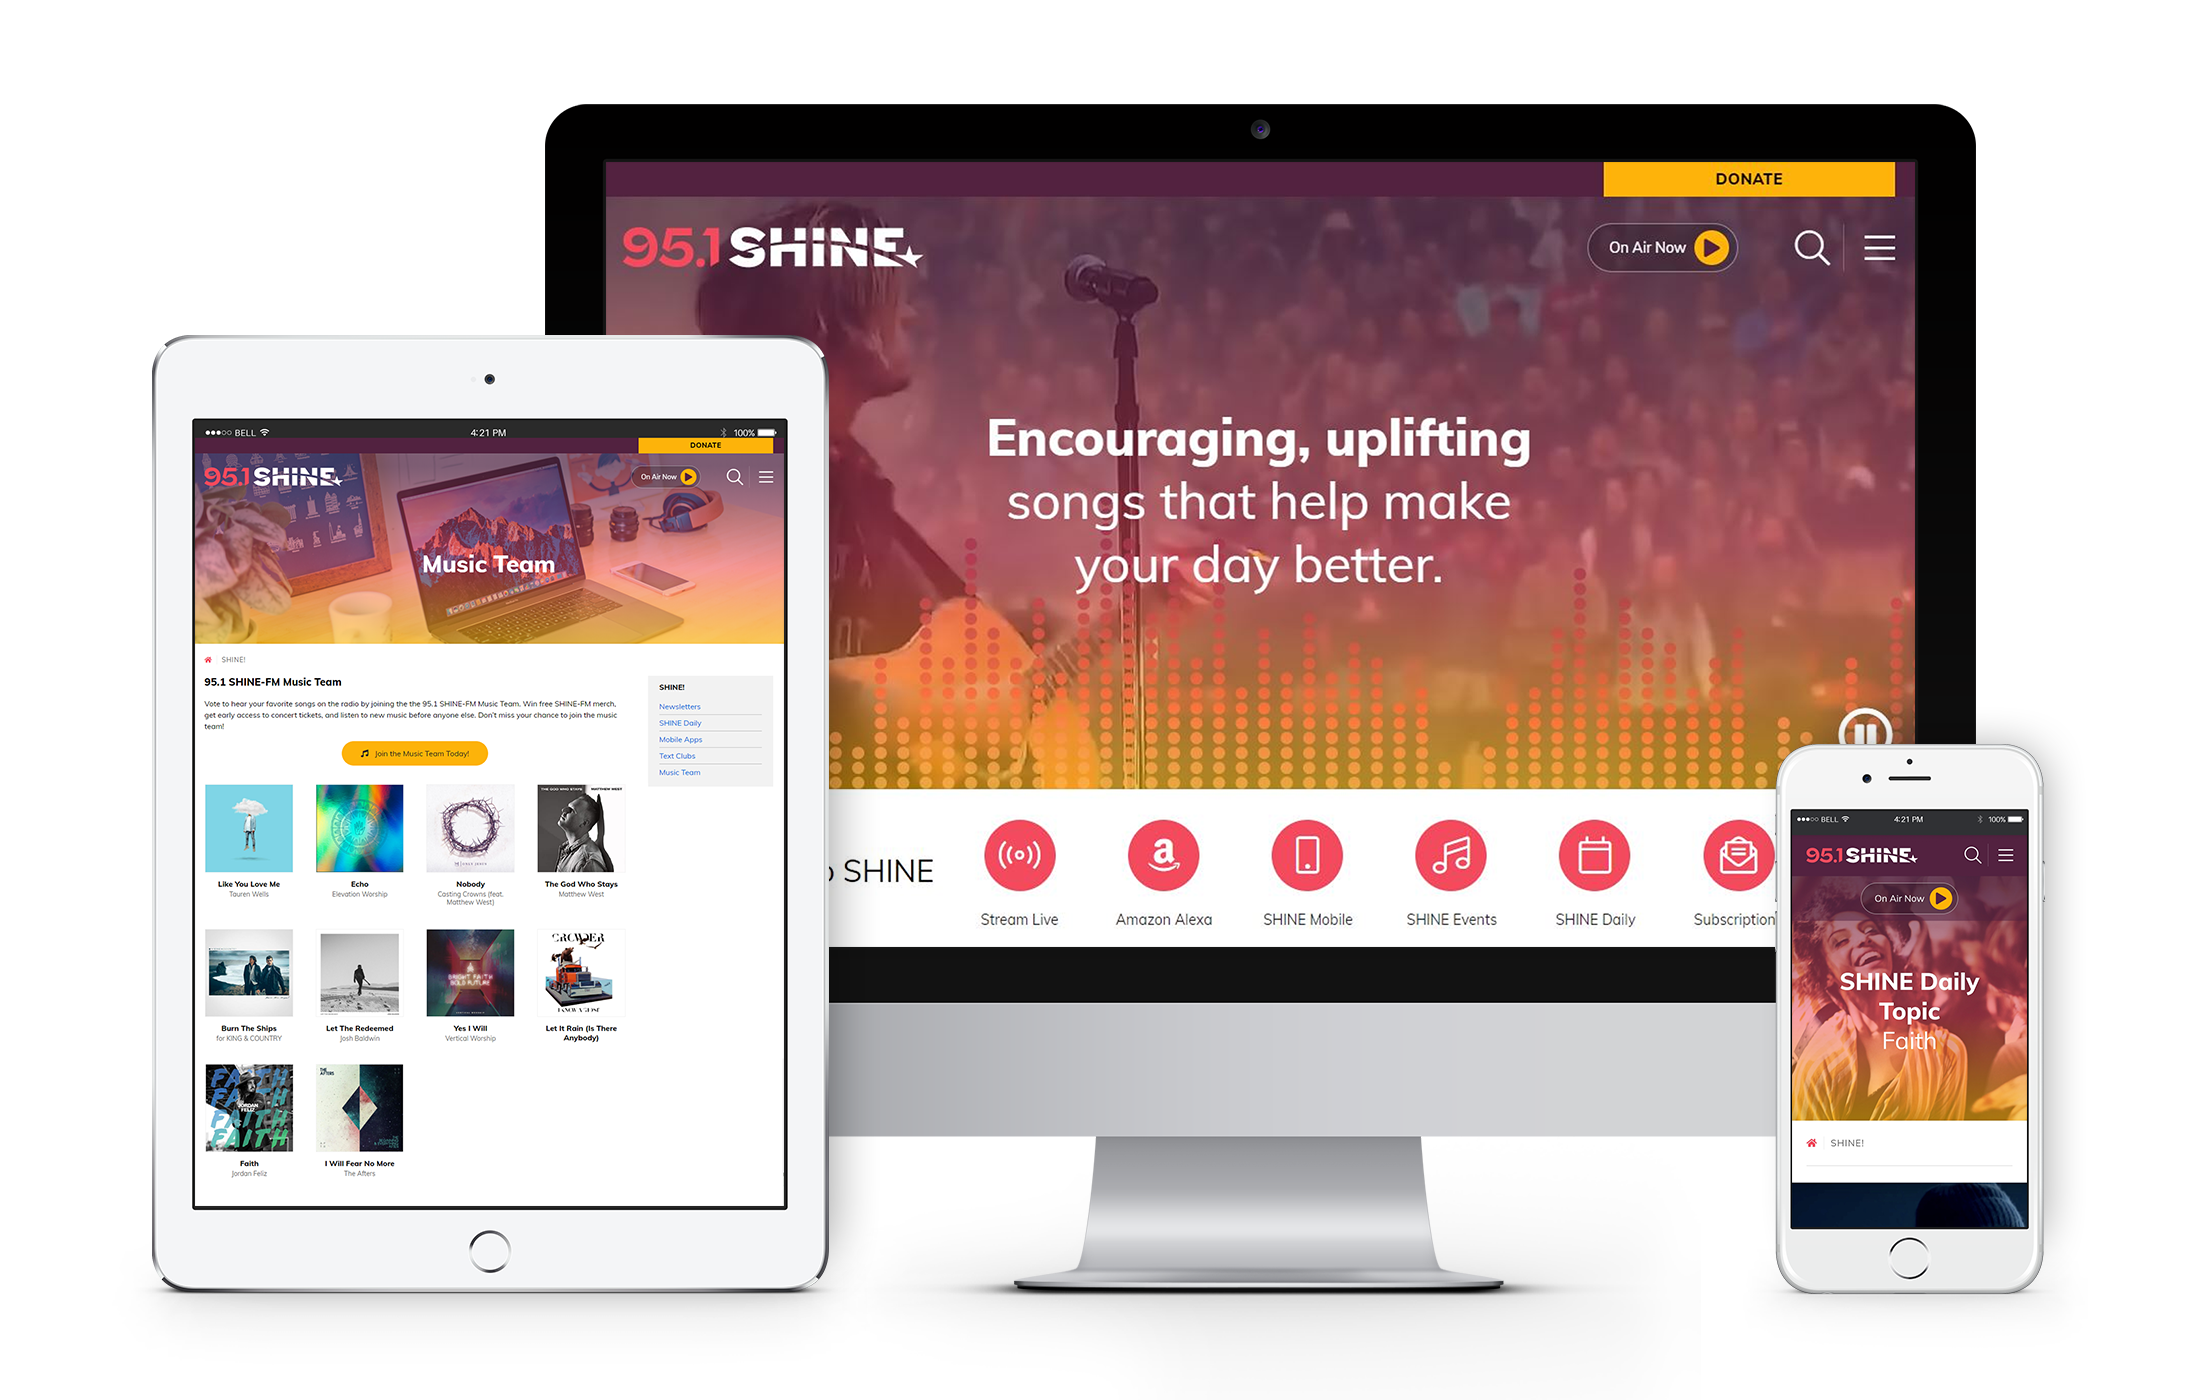 Different screen views of the SHINE FM website displayed on desktop, tablet, and mobile